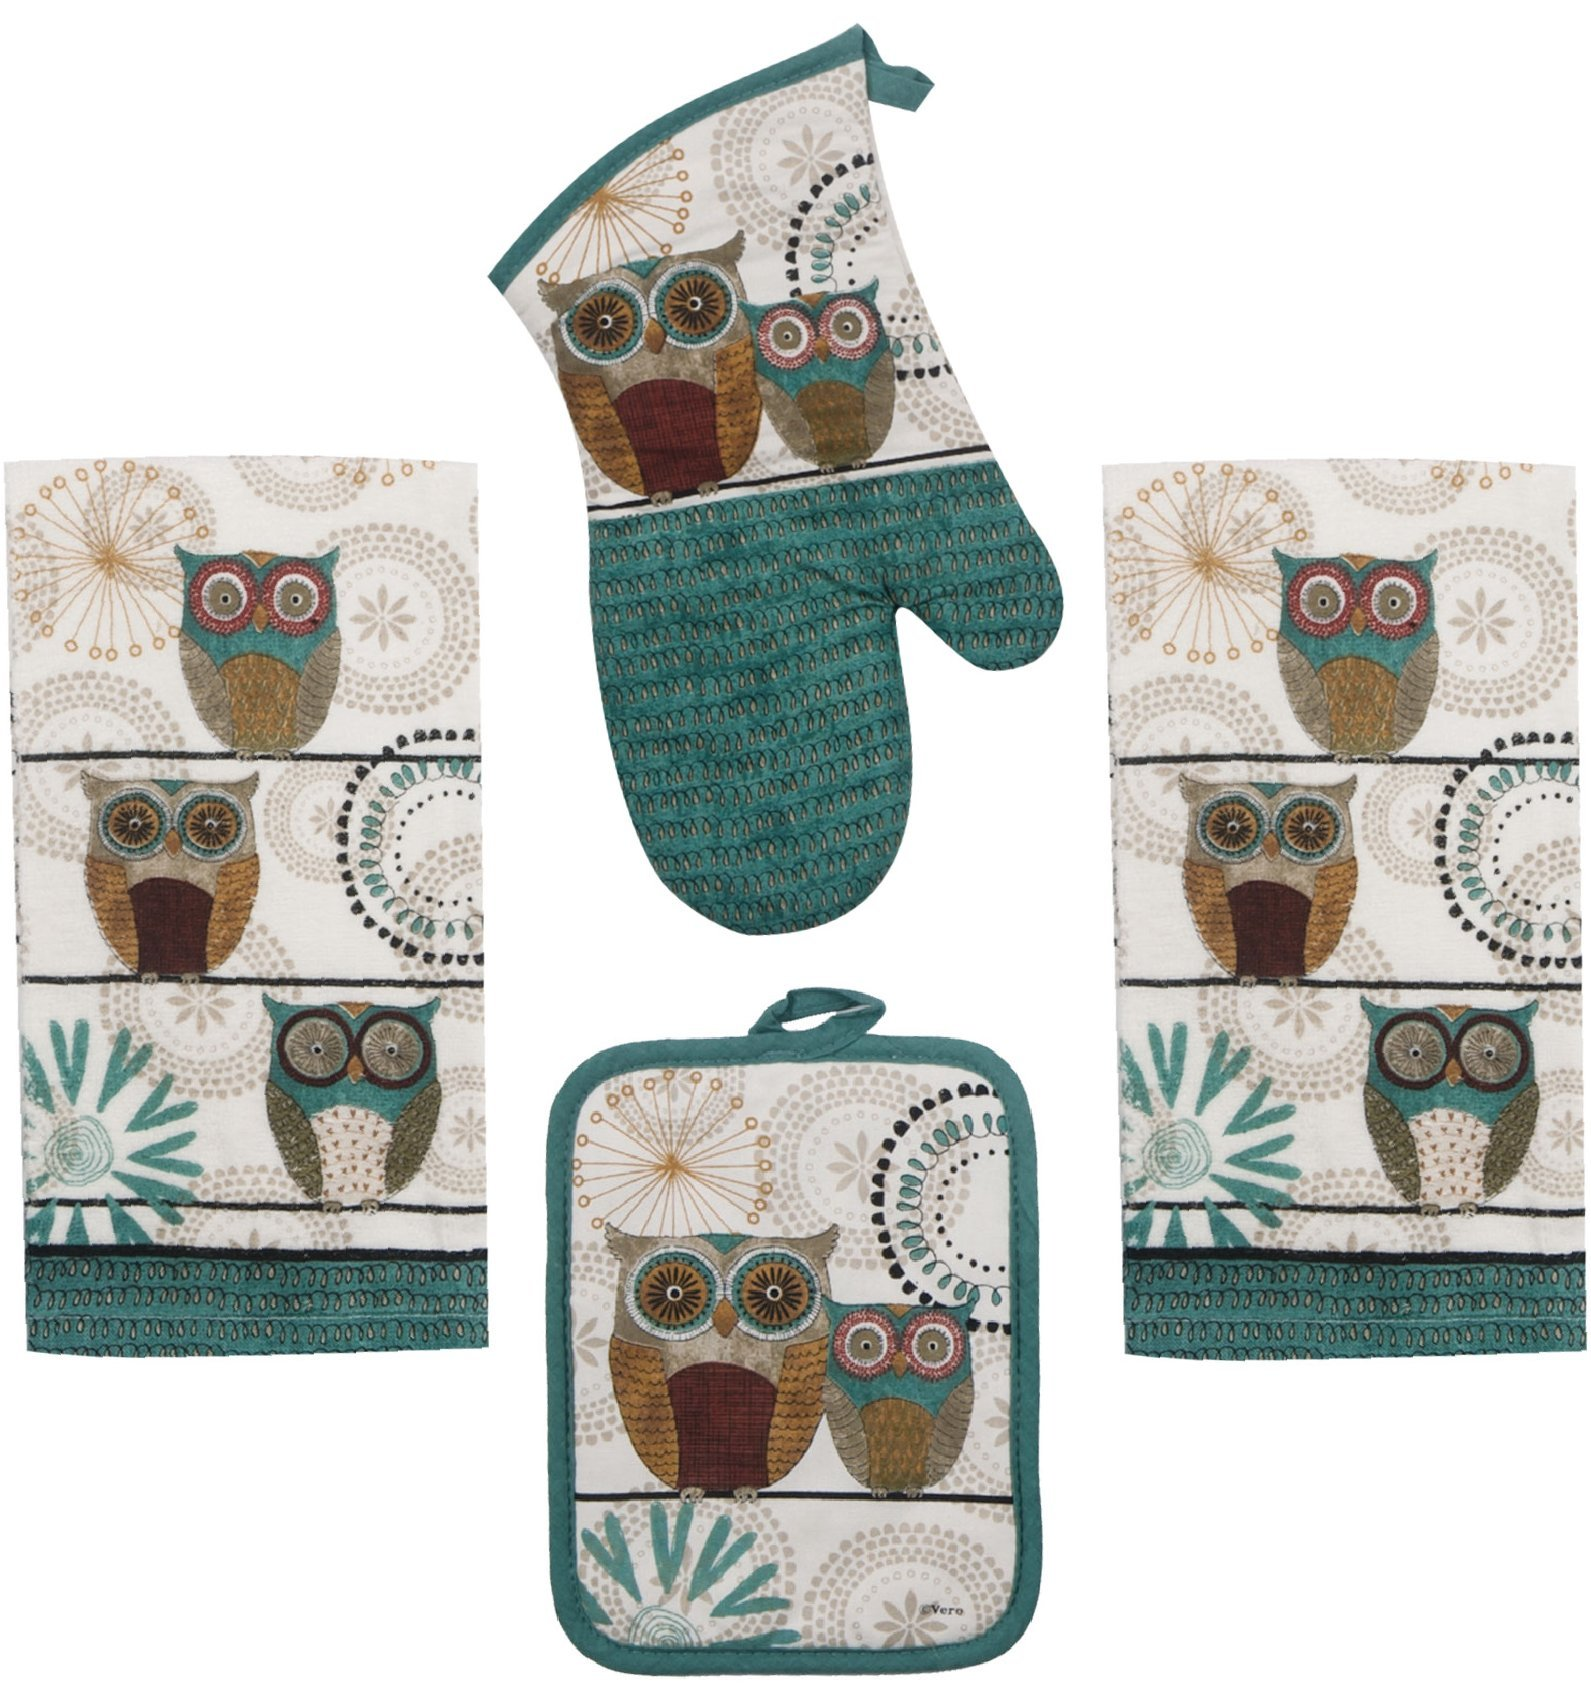 Kay Dee Spice Road Retro Owl Set - 2 Towels, Oven Mitt, Potholder